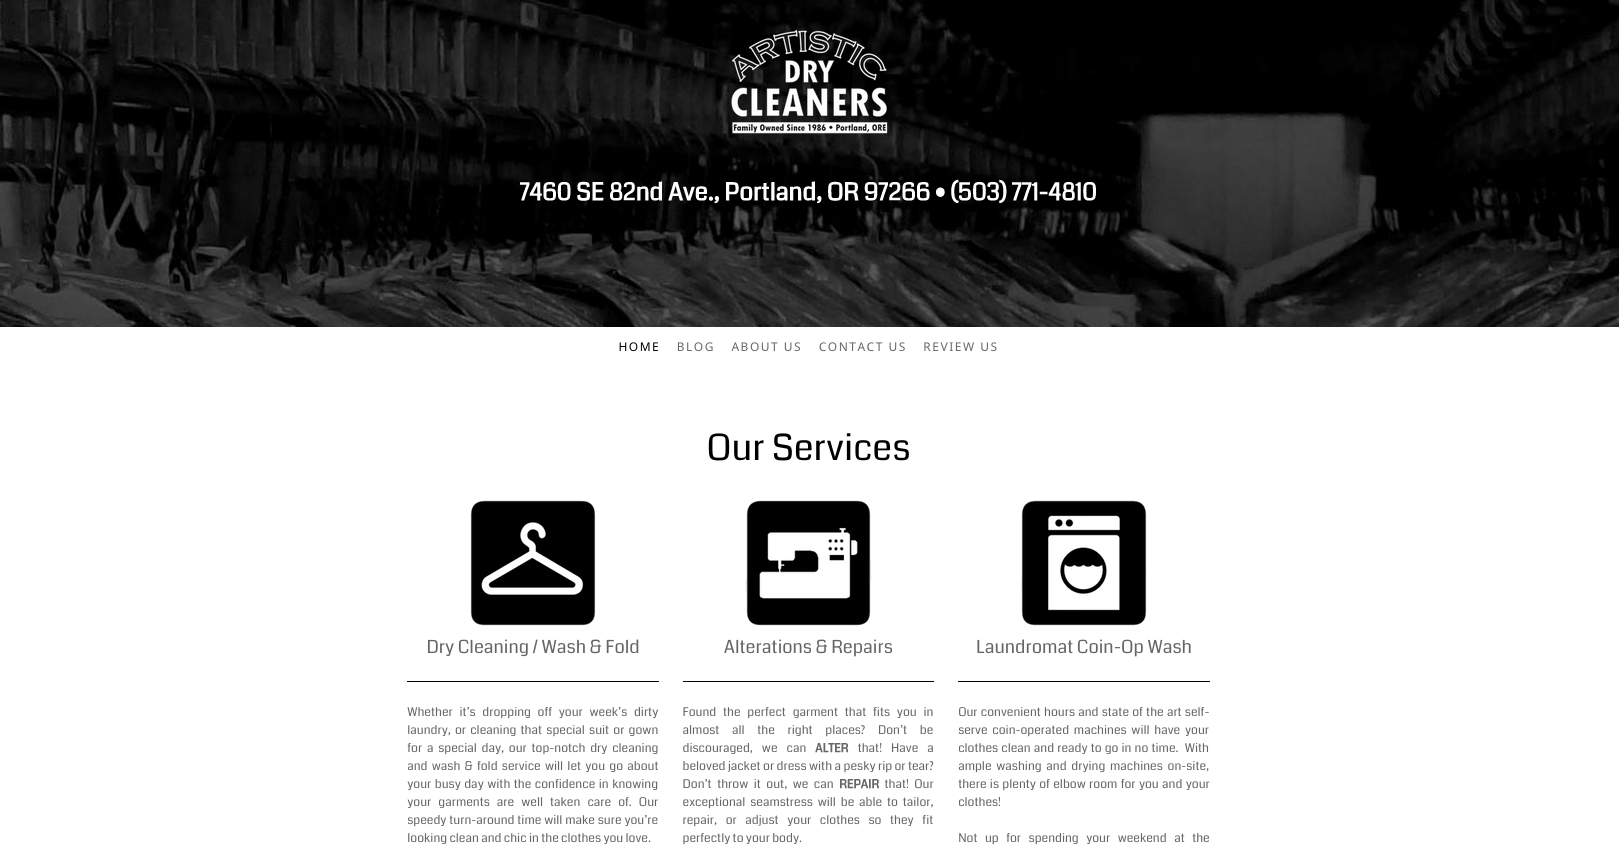 This is an image of the Artisic Dry Cleaning website